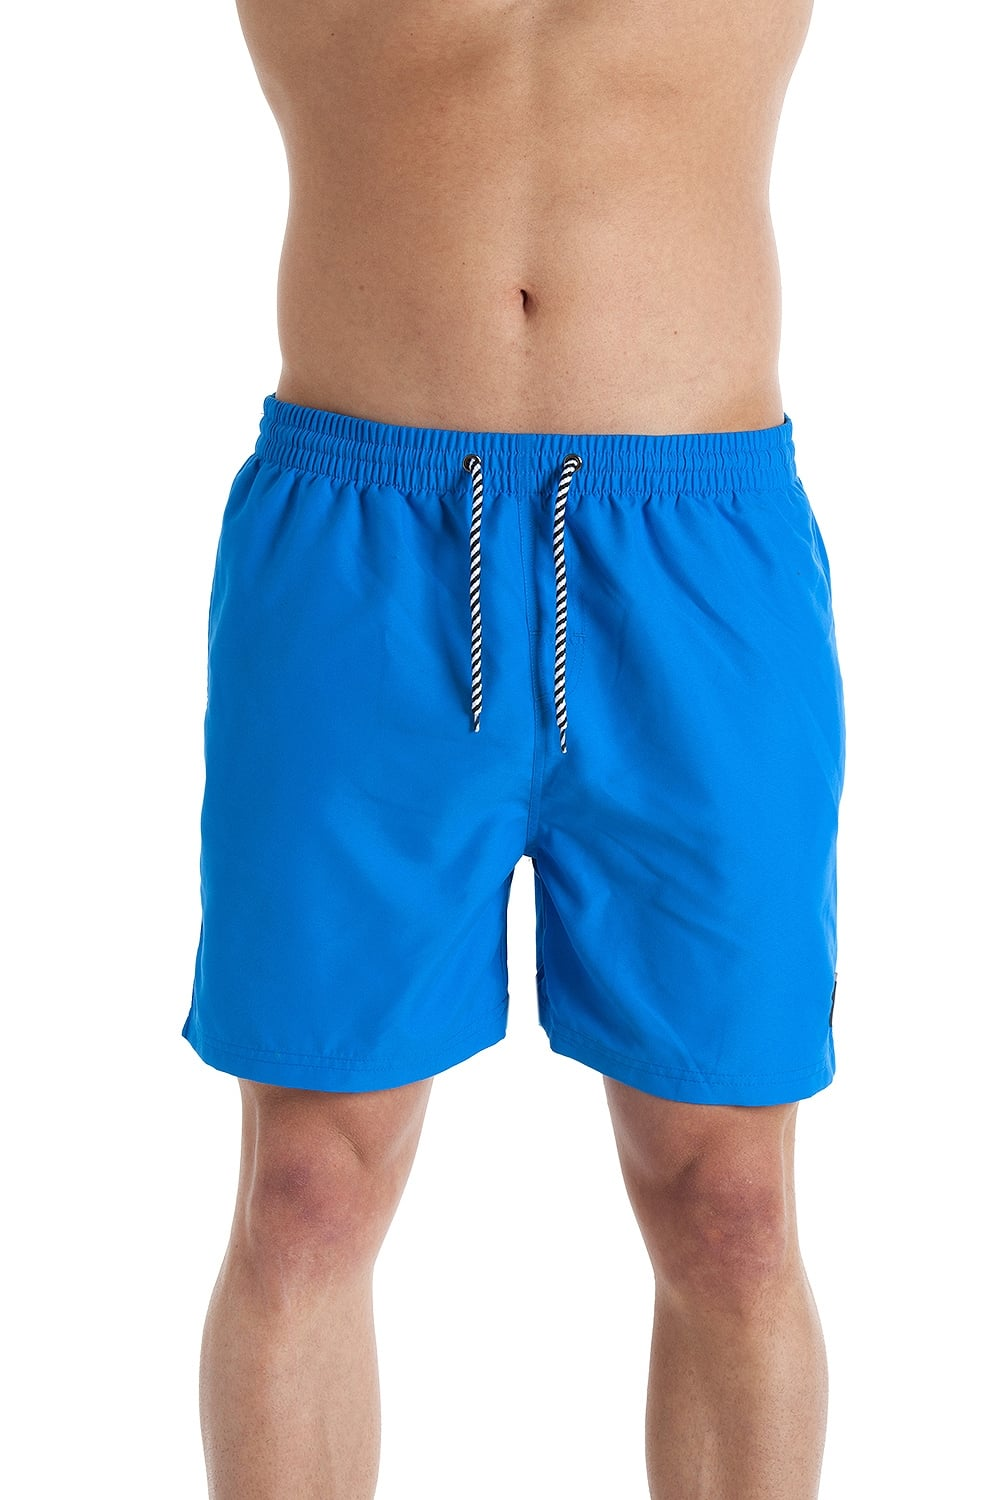 Men's Swim Trunks at trueiupnbp.gq24/7 Customer Support · Low Price Guarantee · Easy Returns · Free Shipping Orders $49+Brands: Sporti, TYR, Speedo, O'Neill.